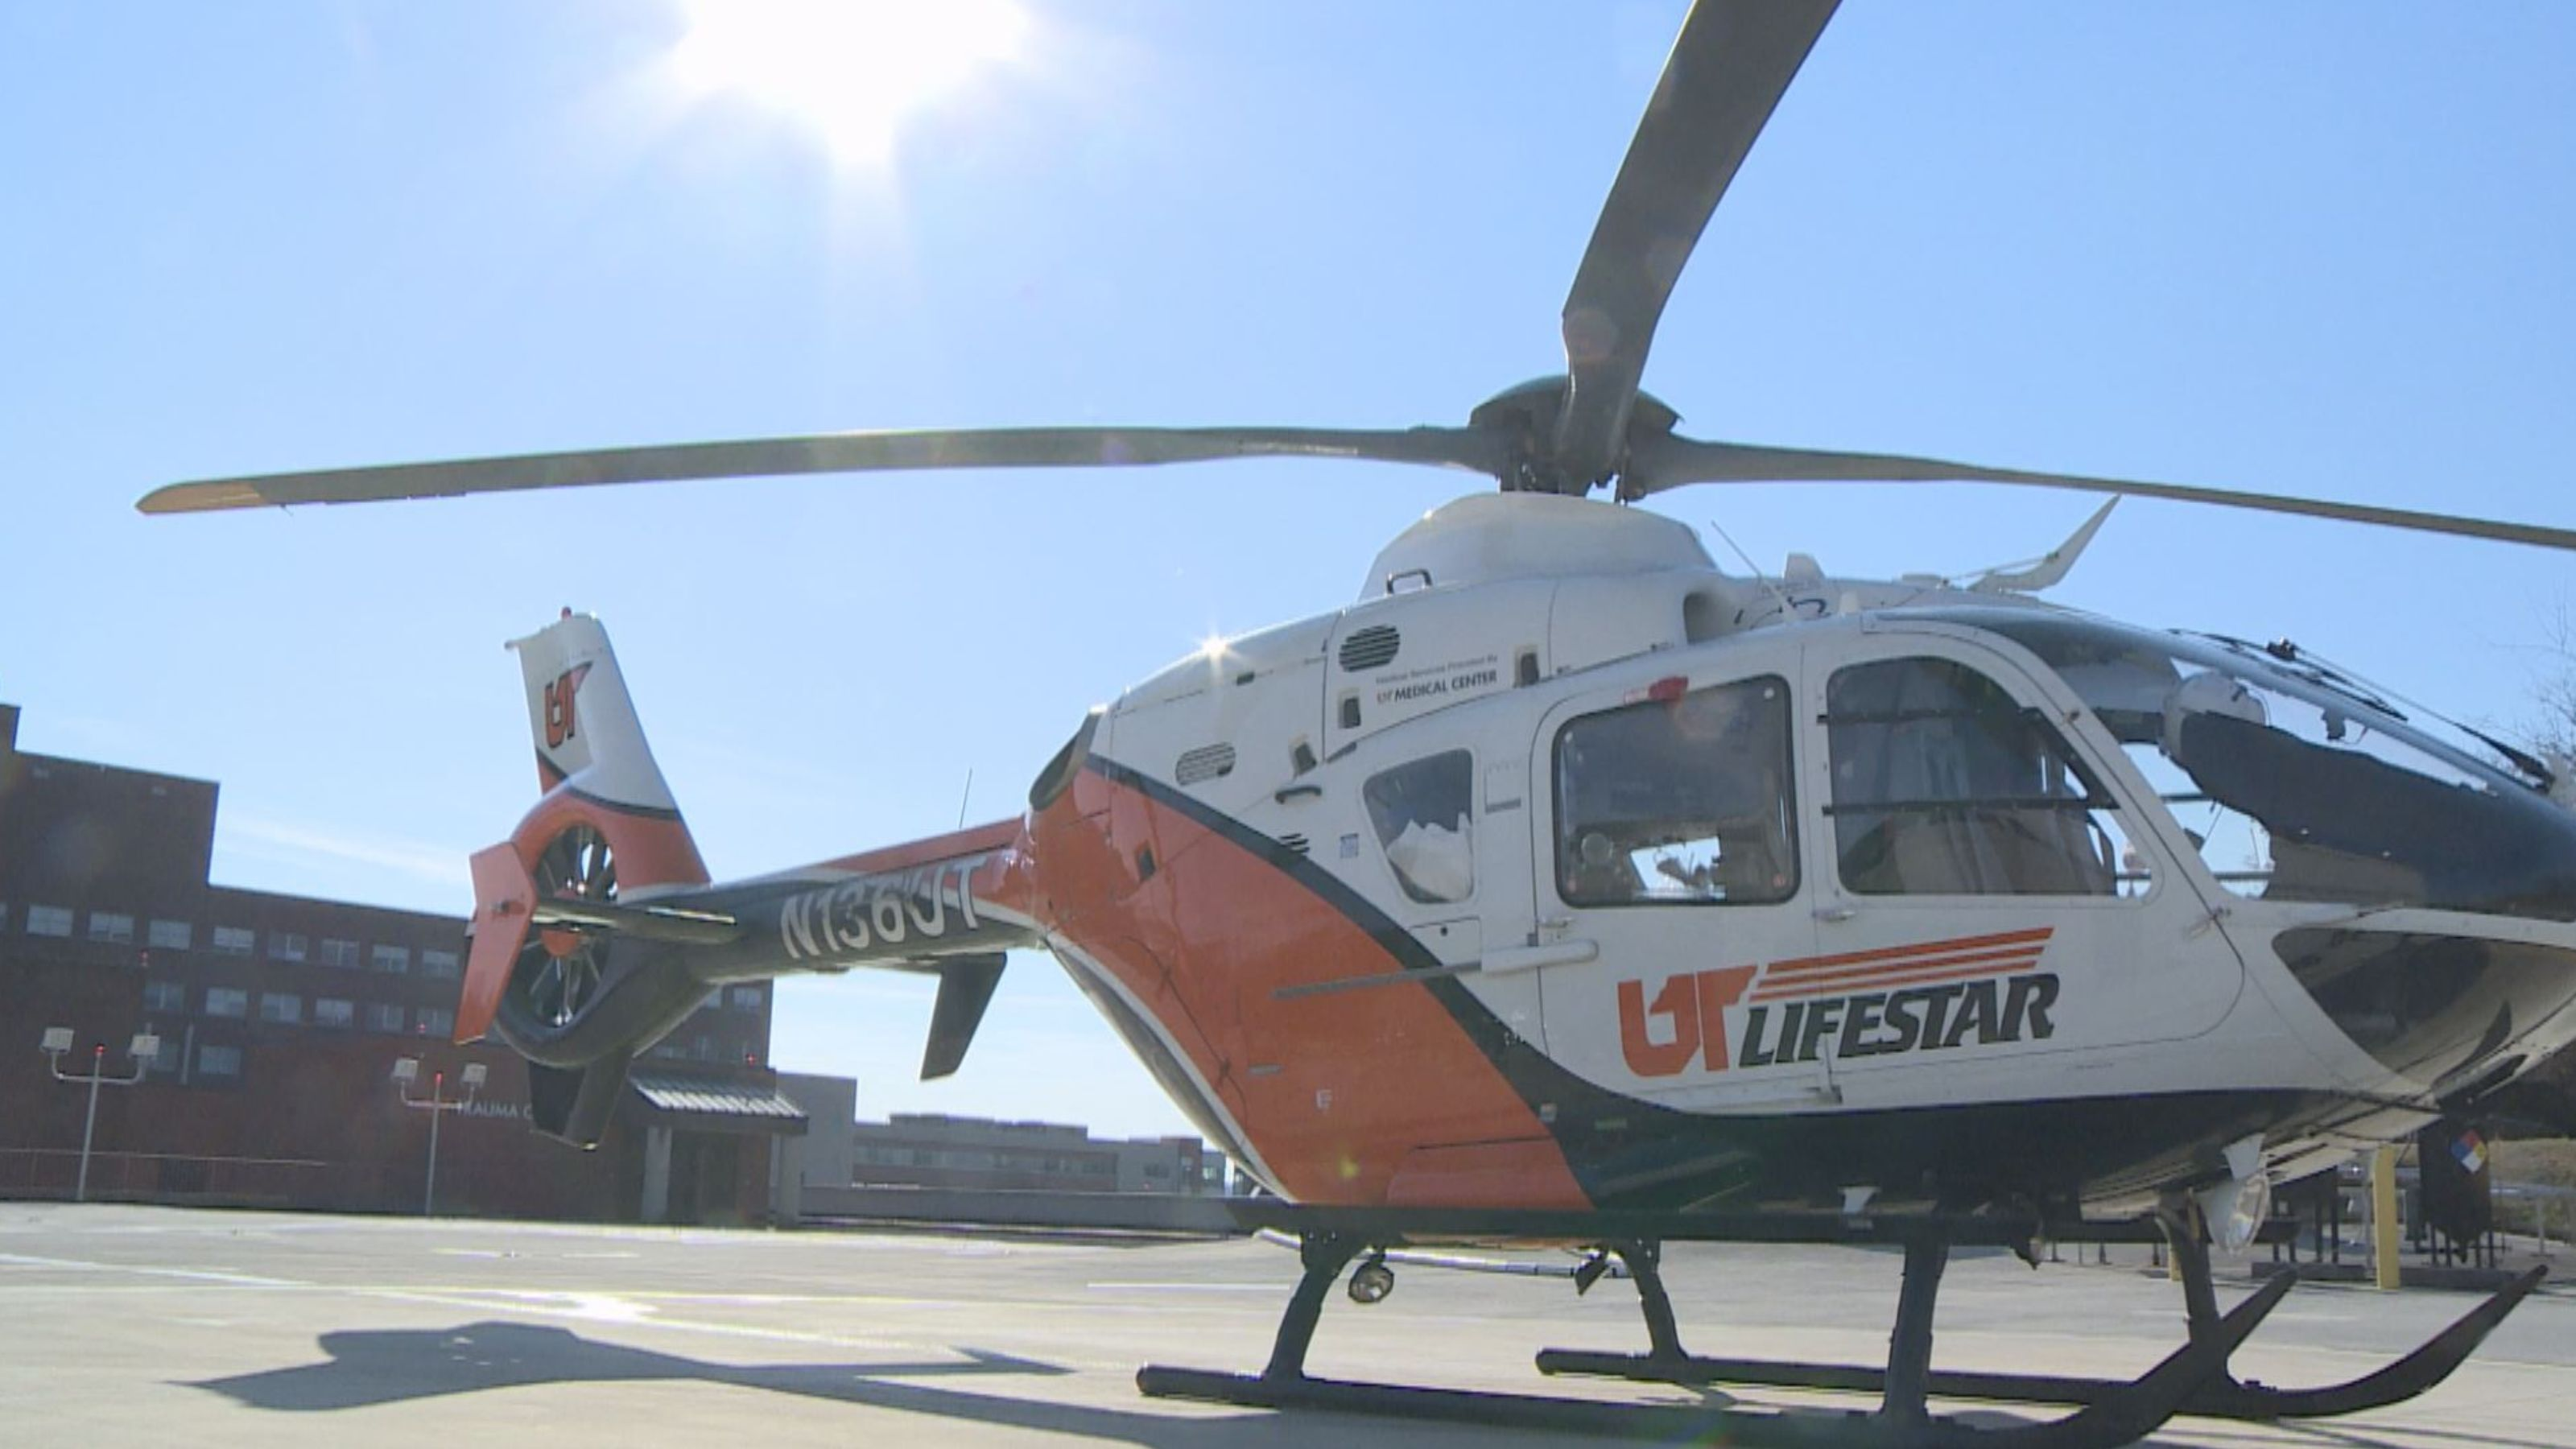 A look back at UT Lifestar's 30 years of flight 30 years